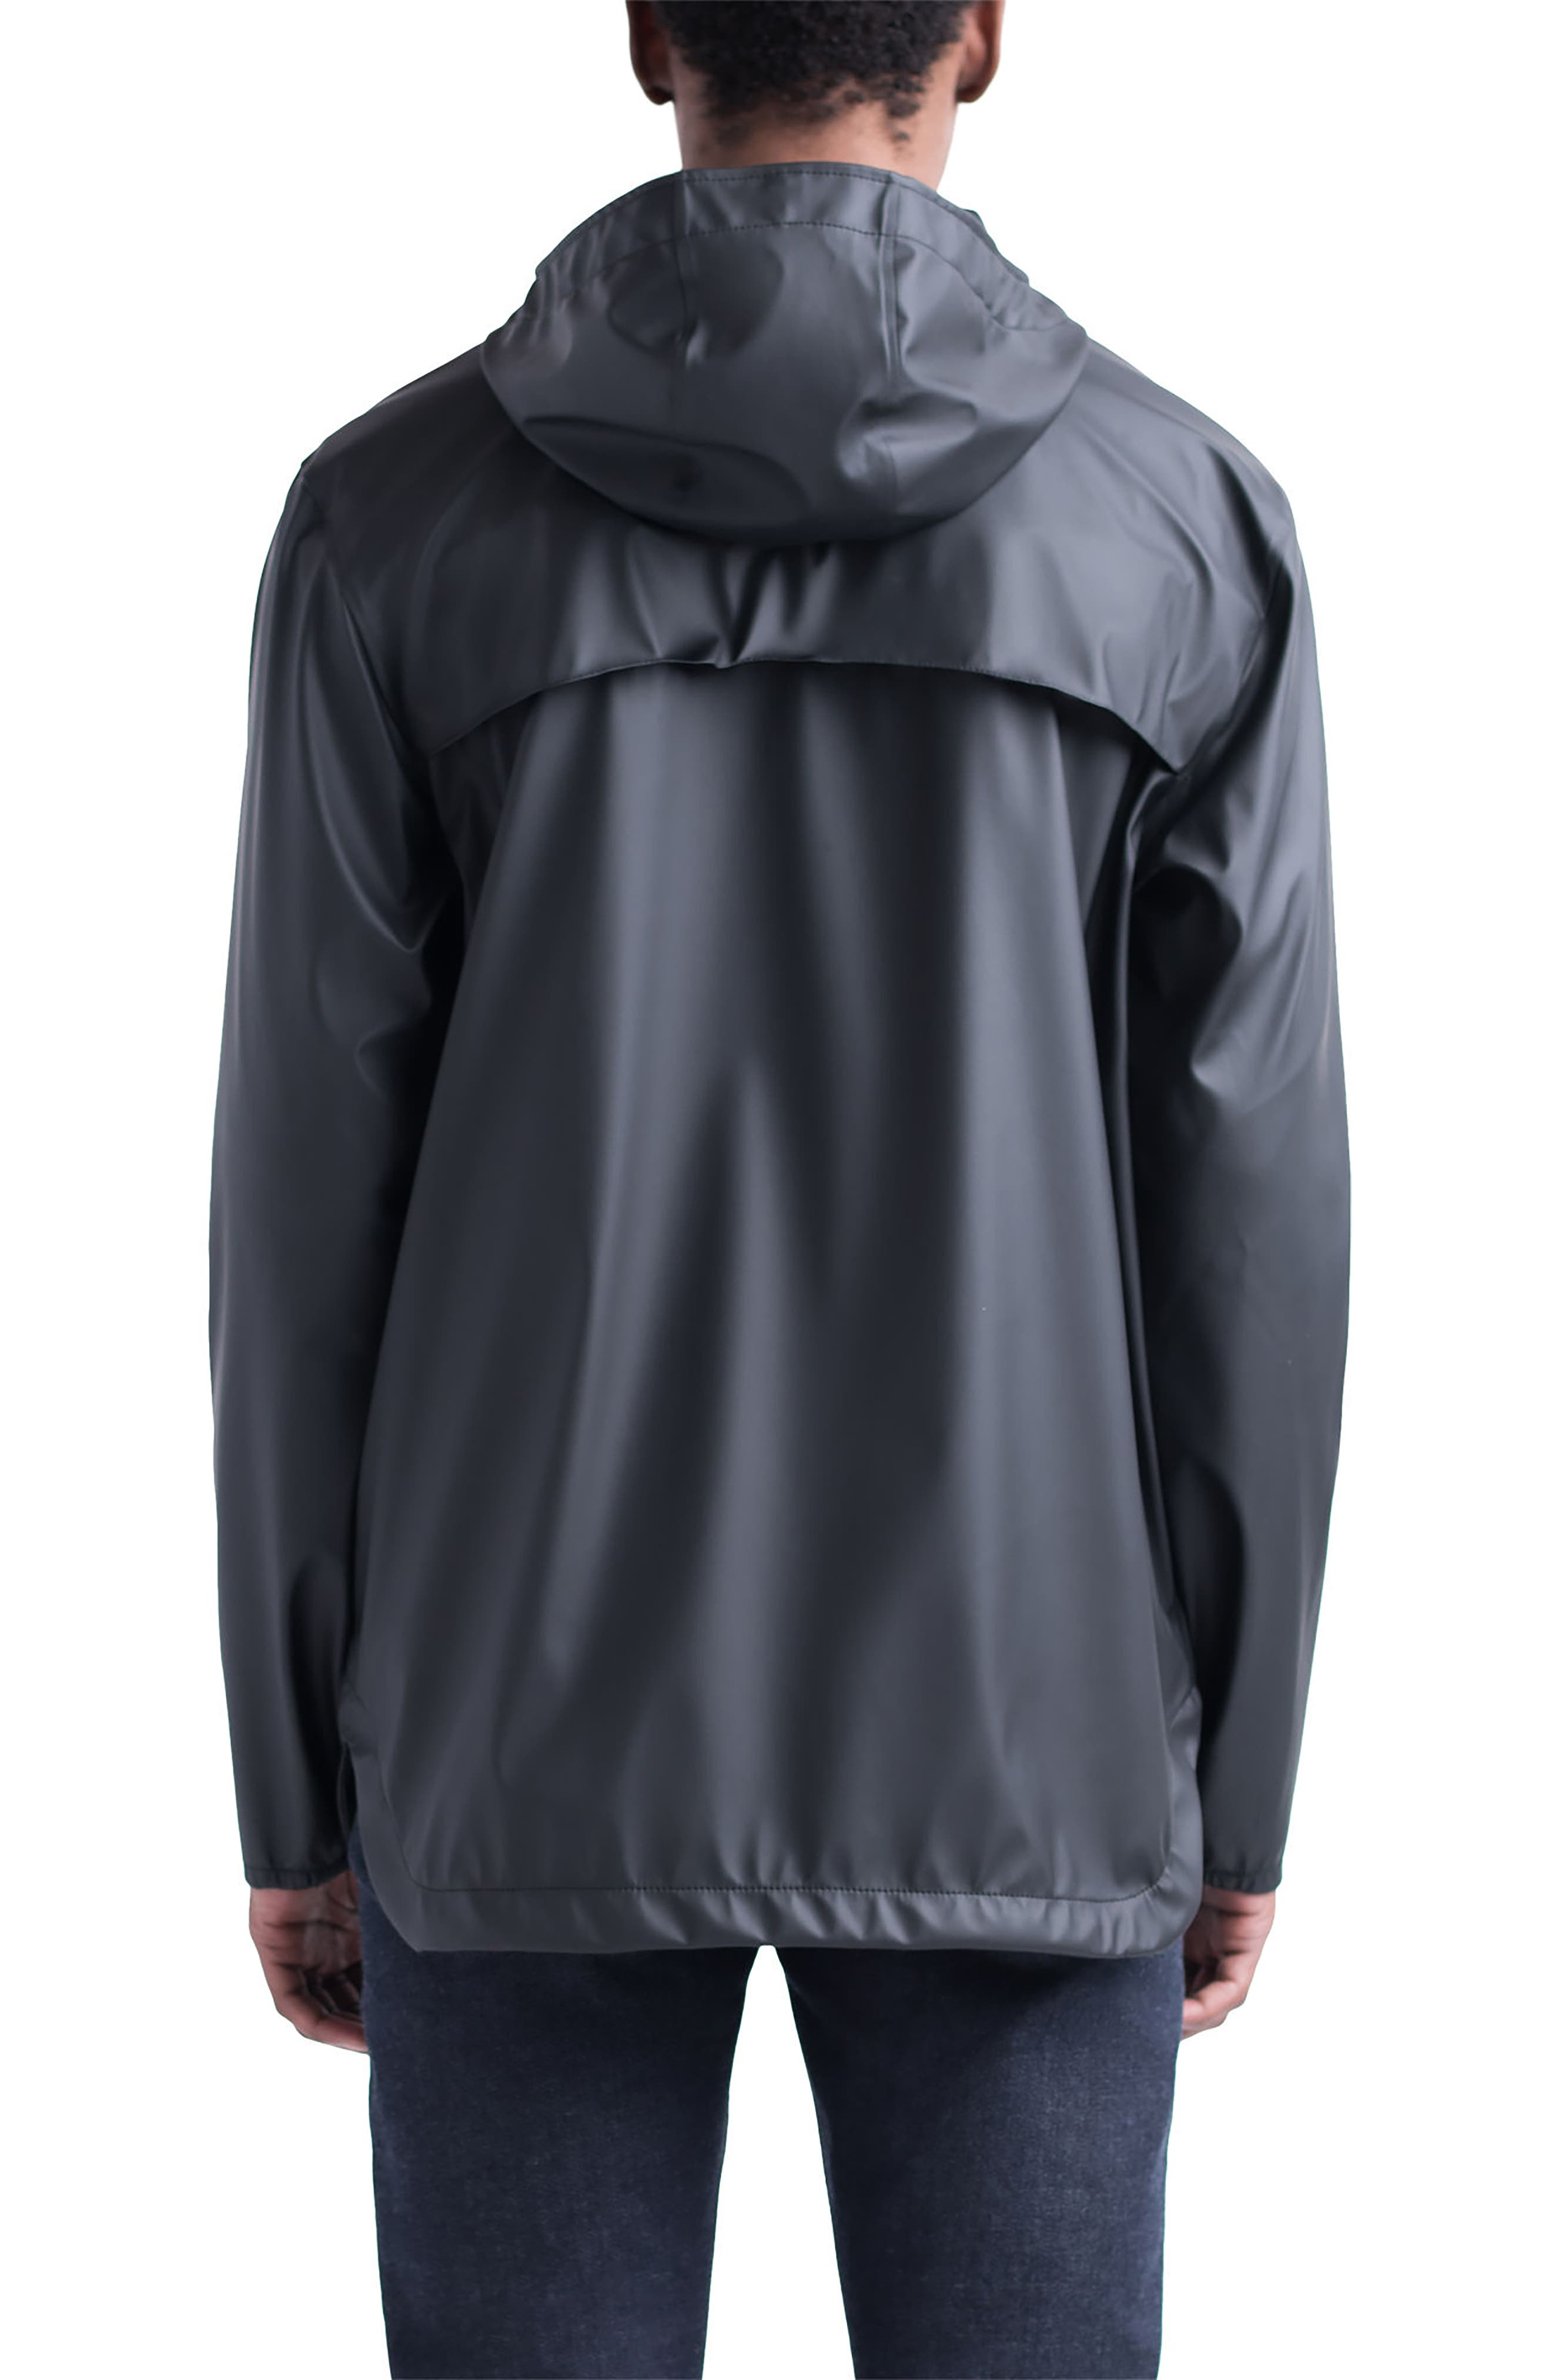 Forecast Parka,                             Alternate thumbnail 2, color,                             Black